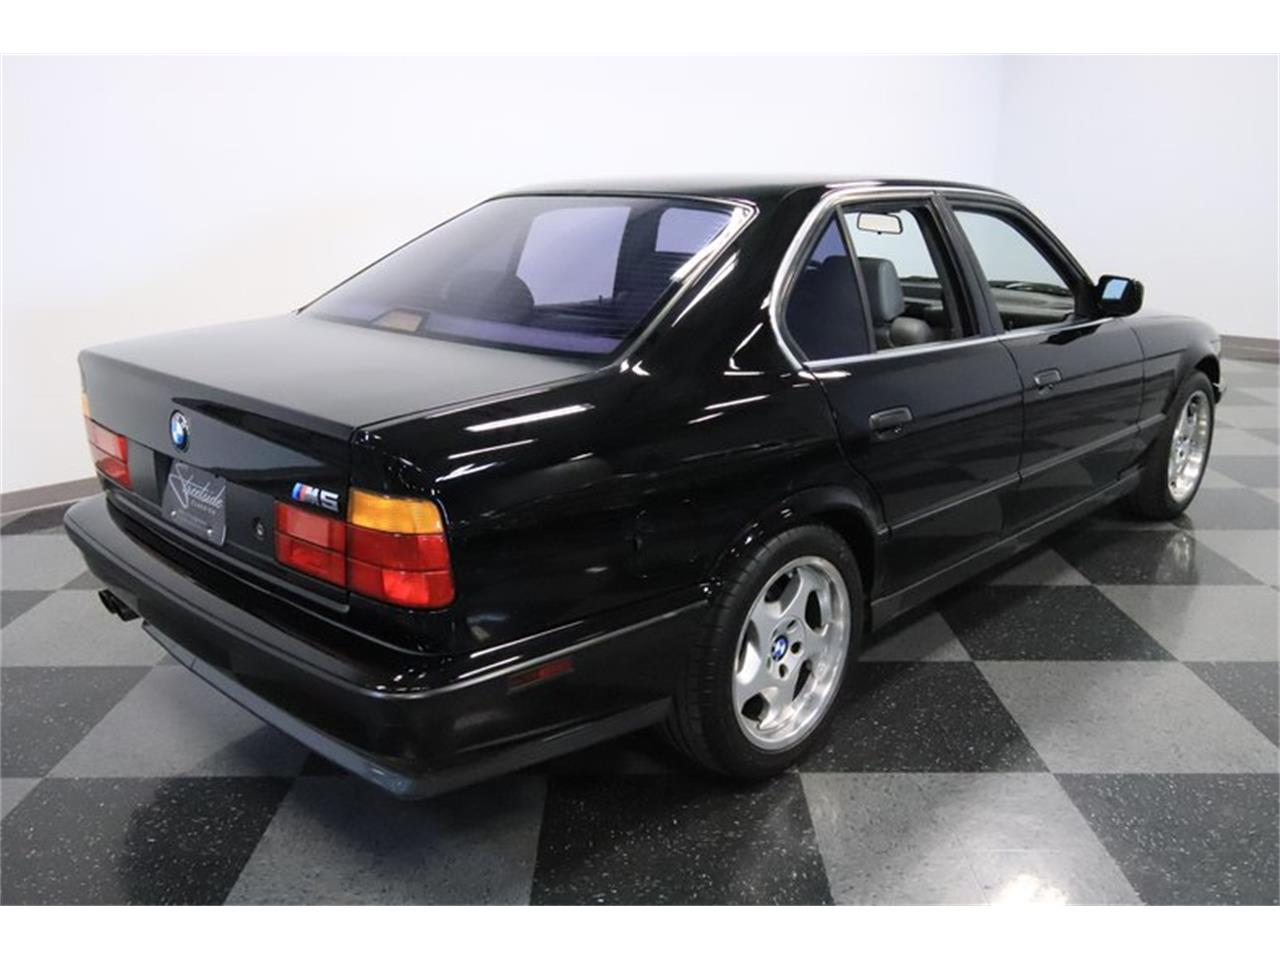 Large Picture of 1991 BMW M5 located in Arizona - $31,995.00 Offered by Streetside Classics - Phoenix - PUPZ